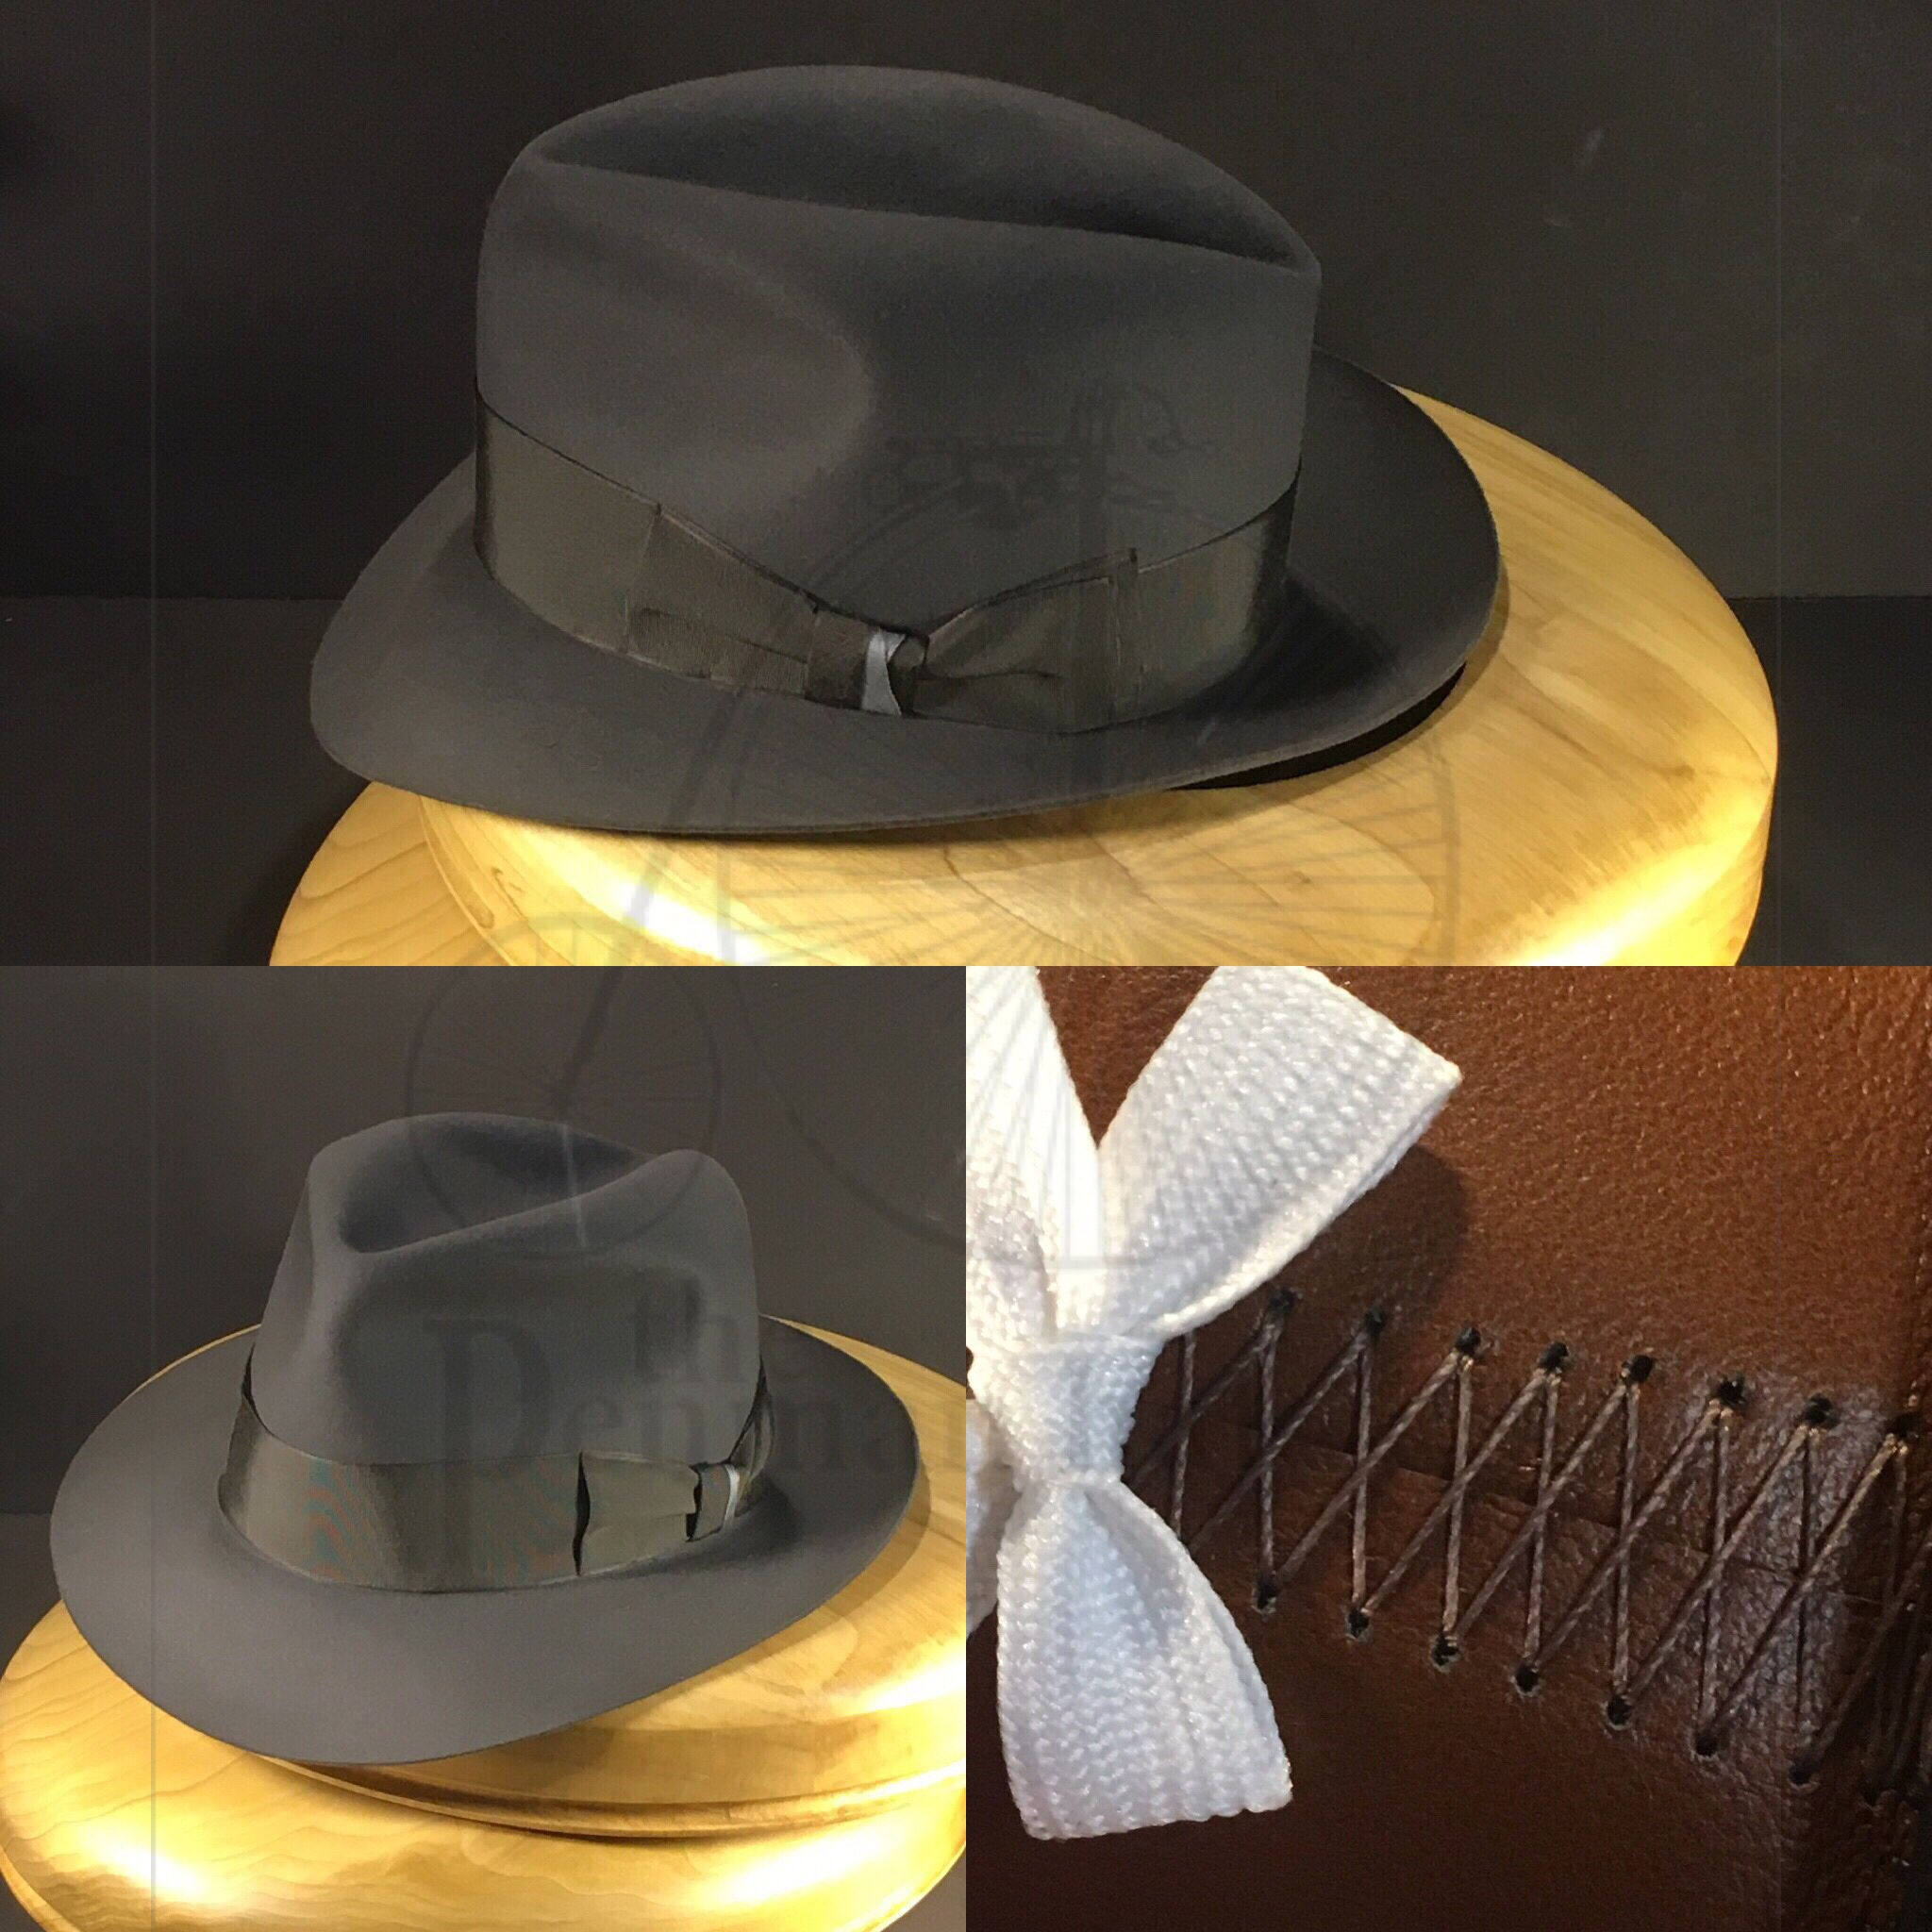 84c06d27517a2 Just finishing up on this bespoke fedora. Mid grey Portuguese Beaver felt  with vintage grosgrain ribbon. Felt is made exclusively for  penmanhats    ...